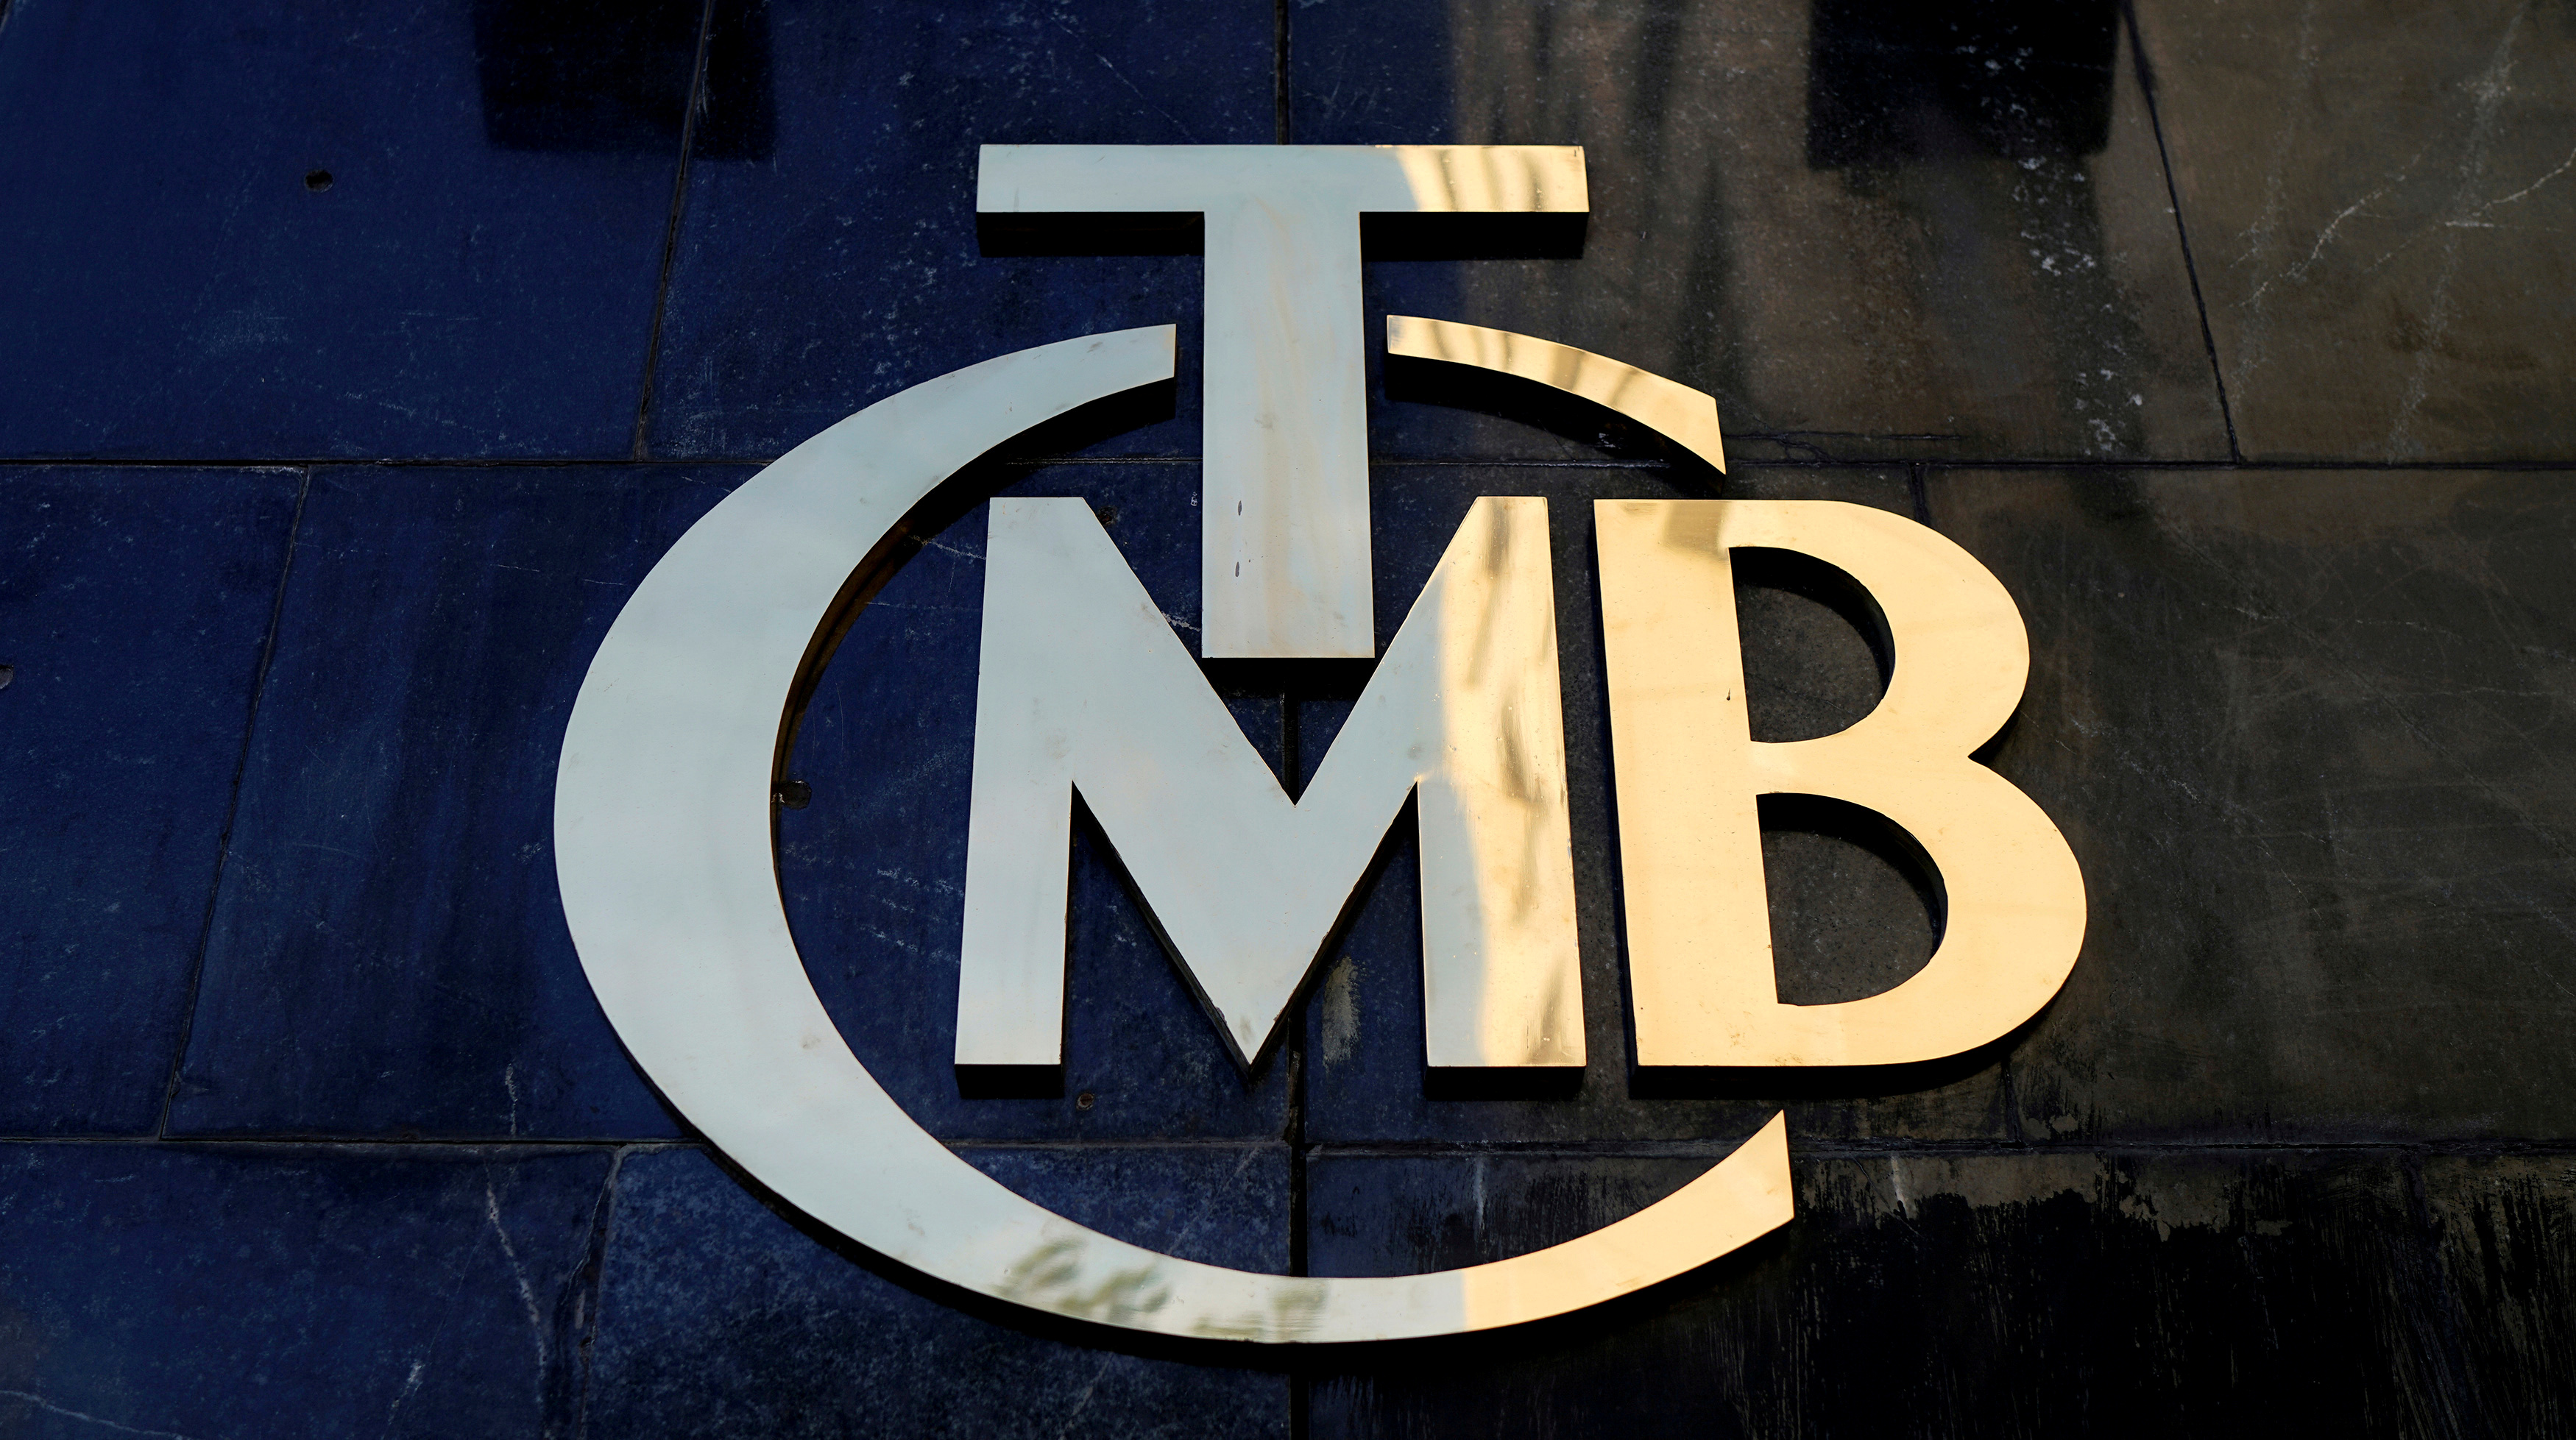 A logo of Turkey's Central Bank (TCMB) is pictured at the entrance of the bank's headquarters in Ankara, Turkey April 19, 2015. REUTERS/Umit Bektas/File Photo